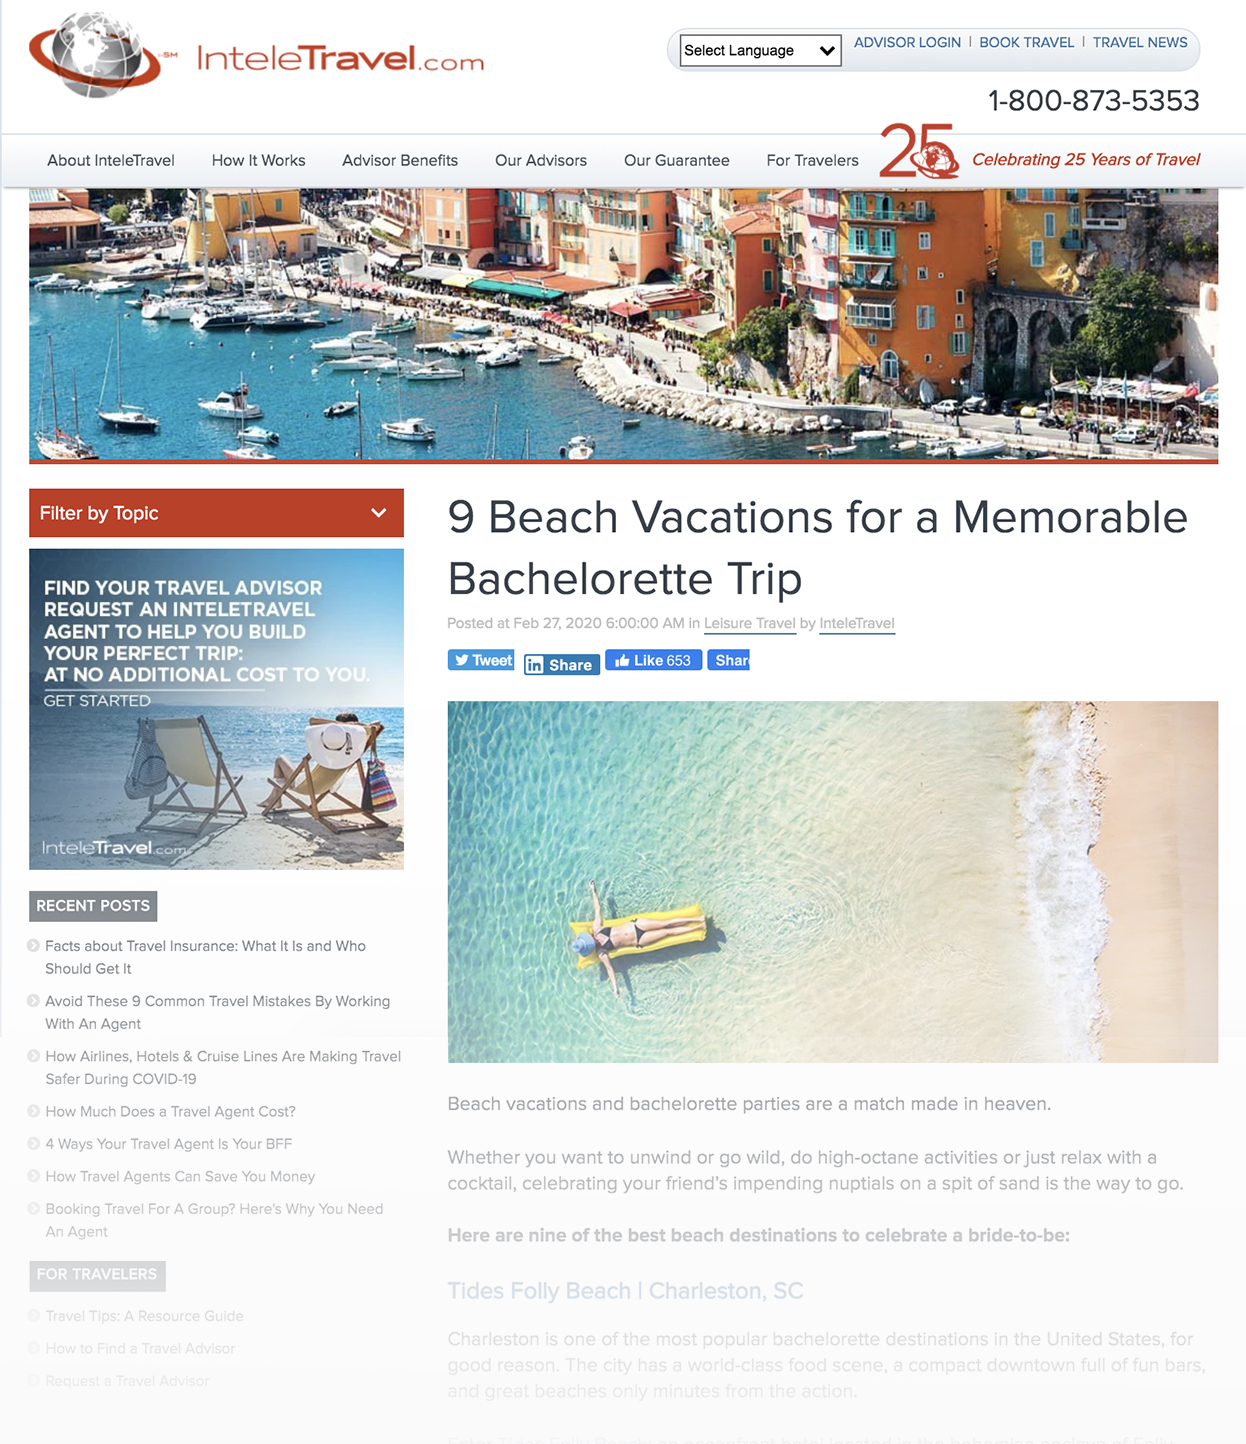 Screenchot of InteleTravel Blog Called 9 Beach Vacations for a Memorable Bachelorette Trip